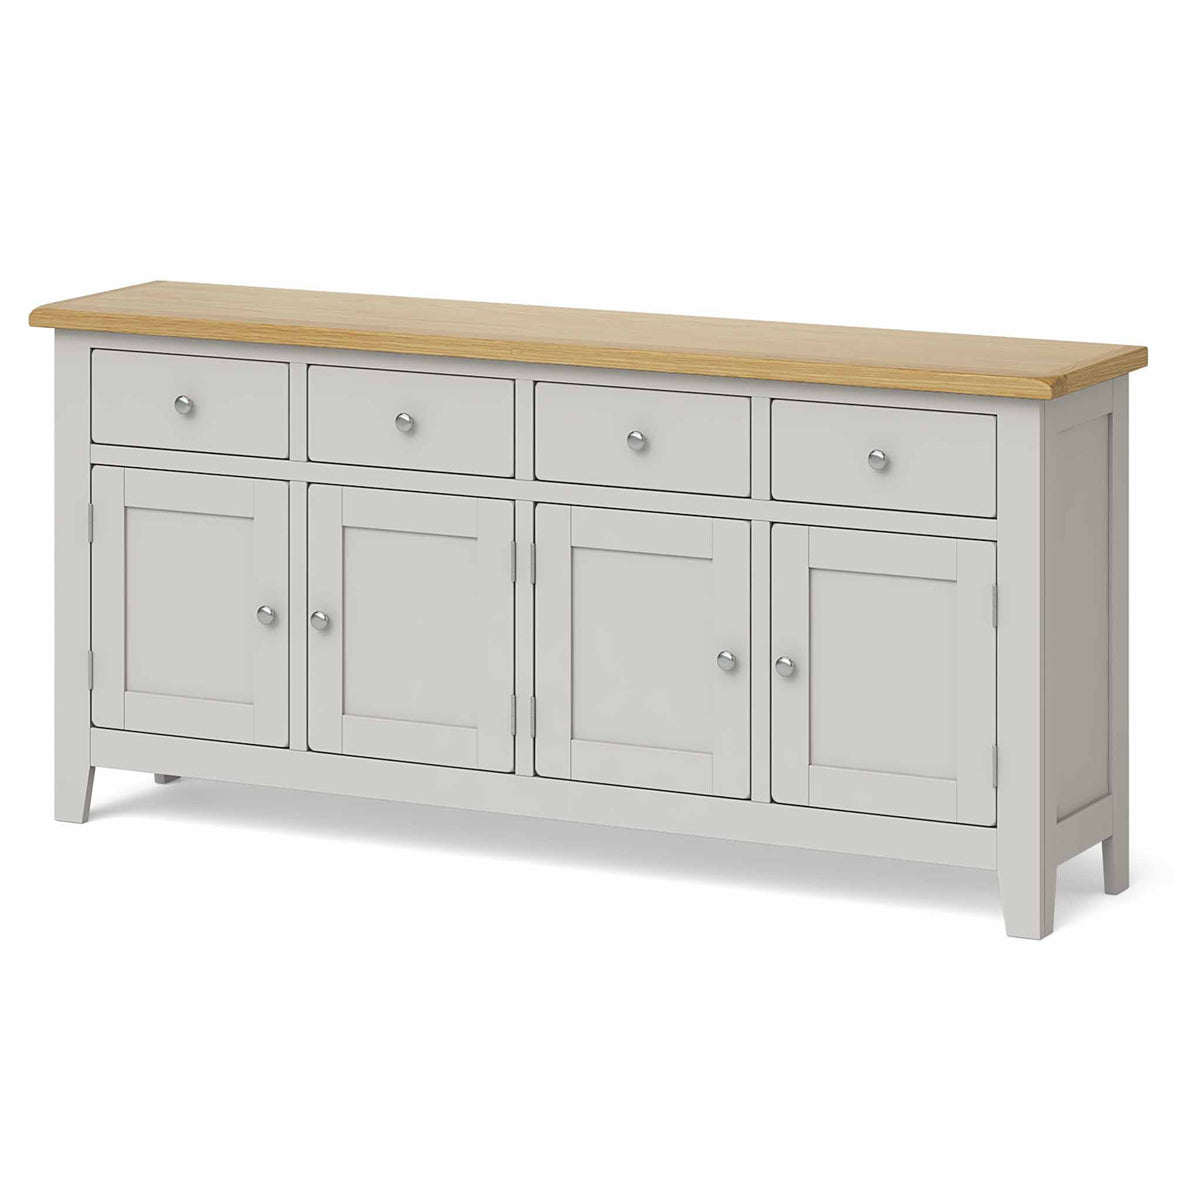 Lundy Grey Extra Large Sideboard Unit- Side view